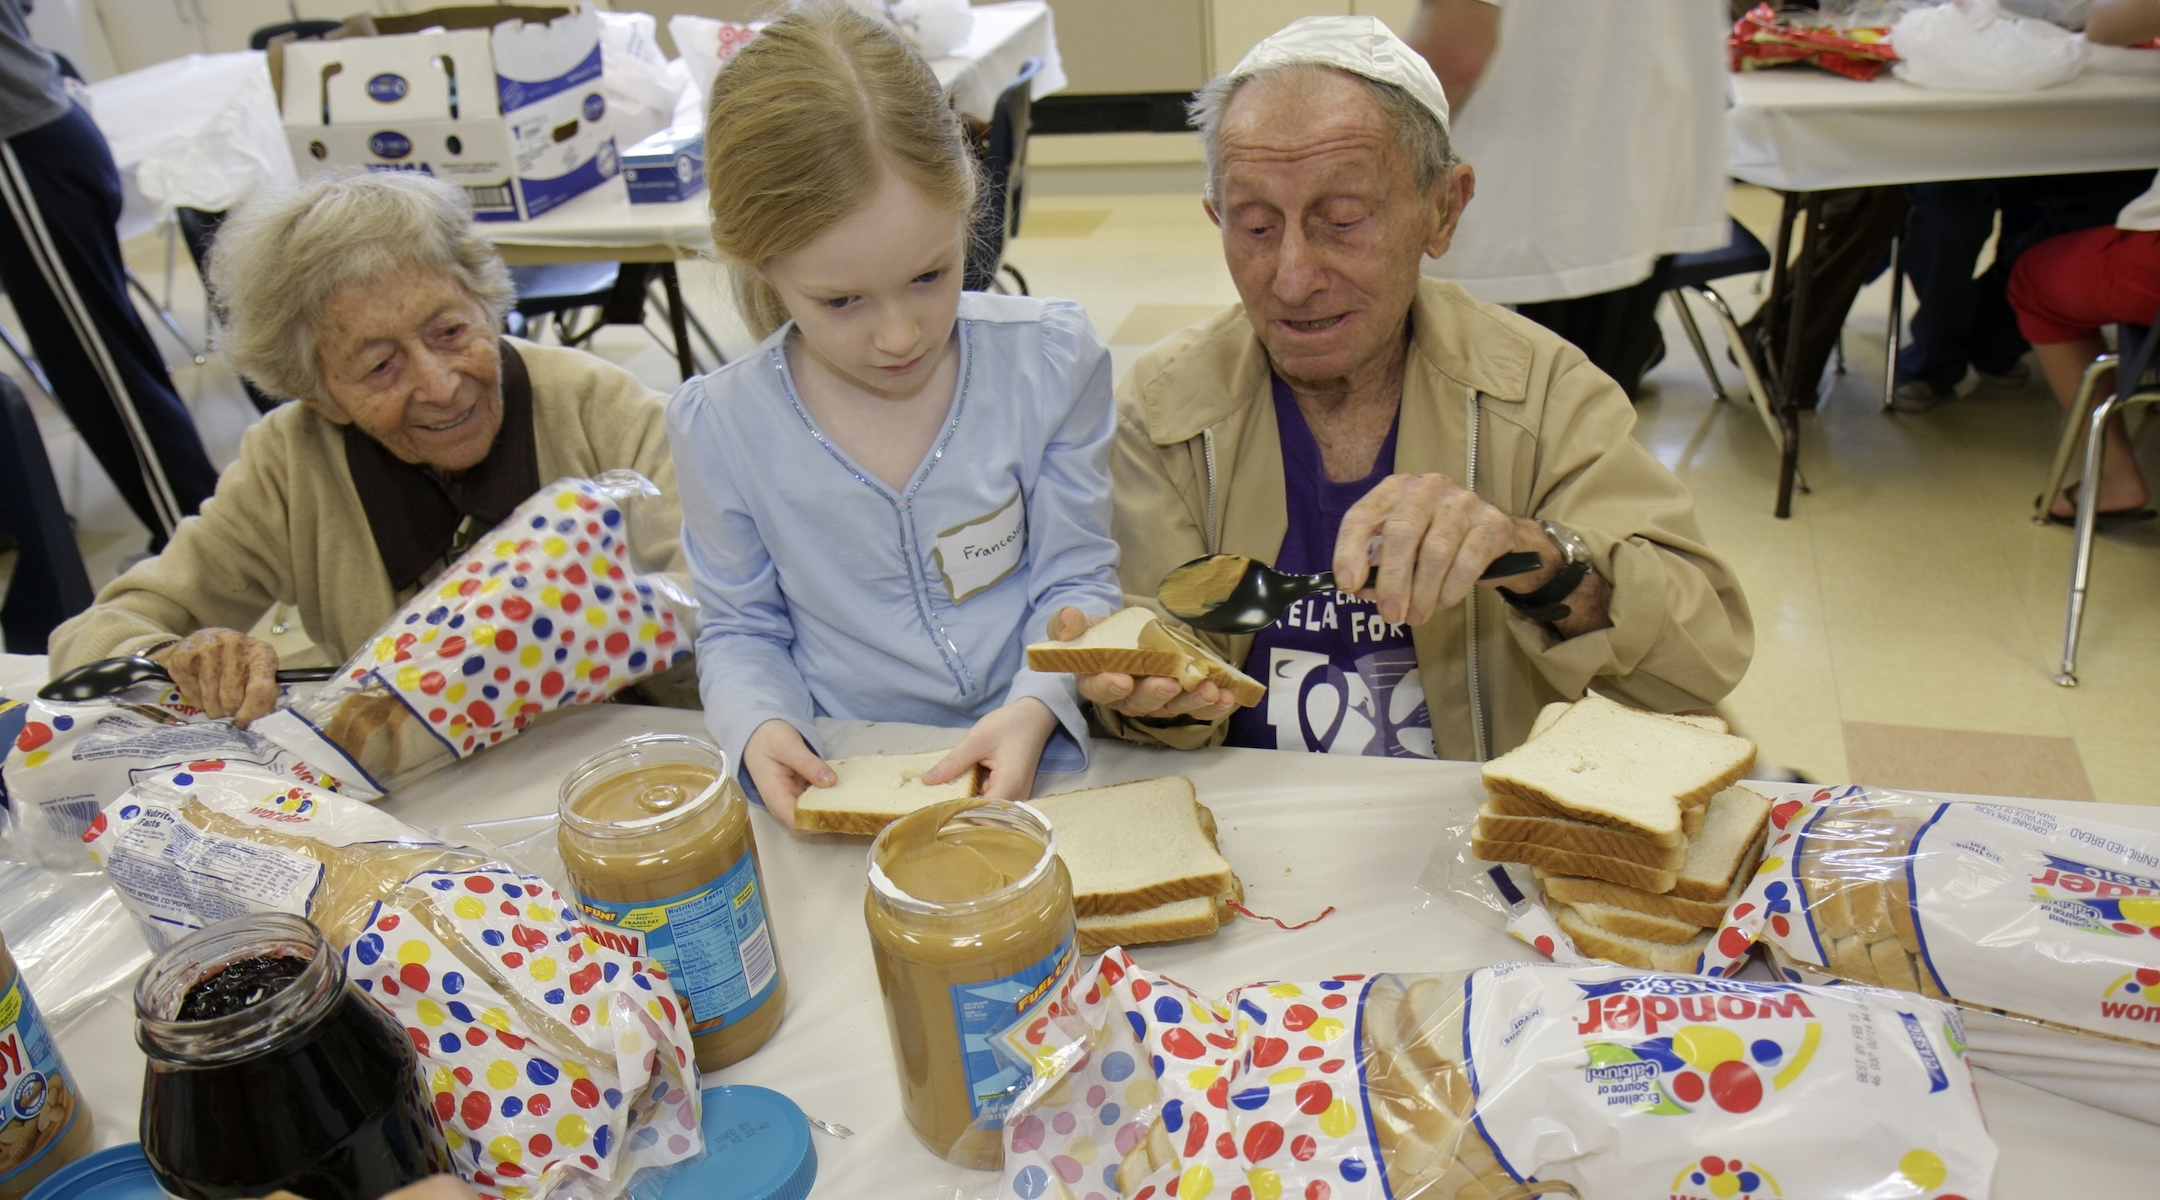 A senior couple and young girl preparing food for the Mitzvah Weekend at a synagogue in 2008. (Jeffrey Greenberg/Getty Images)